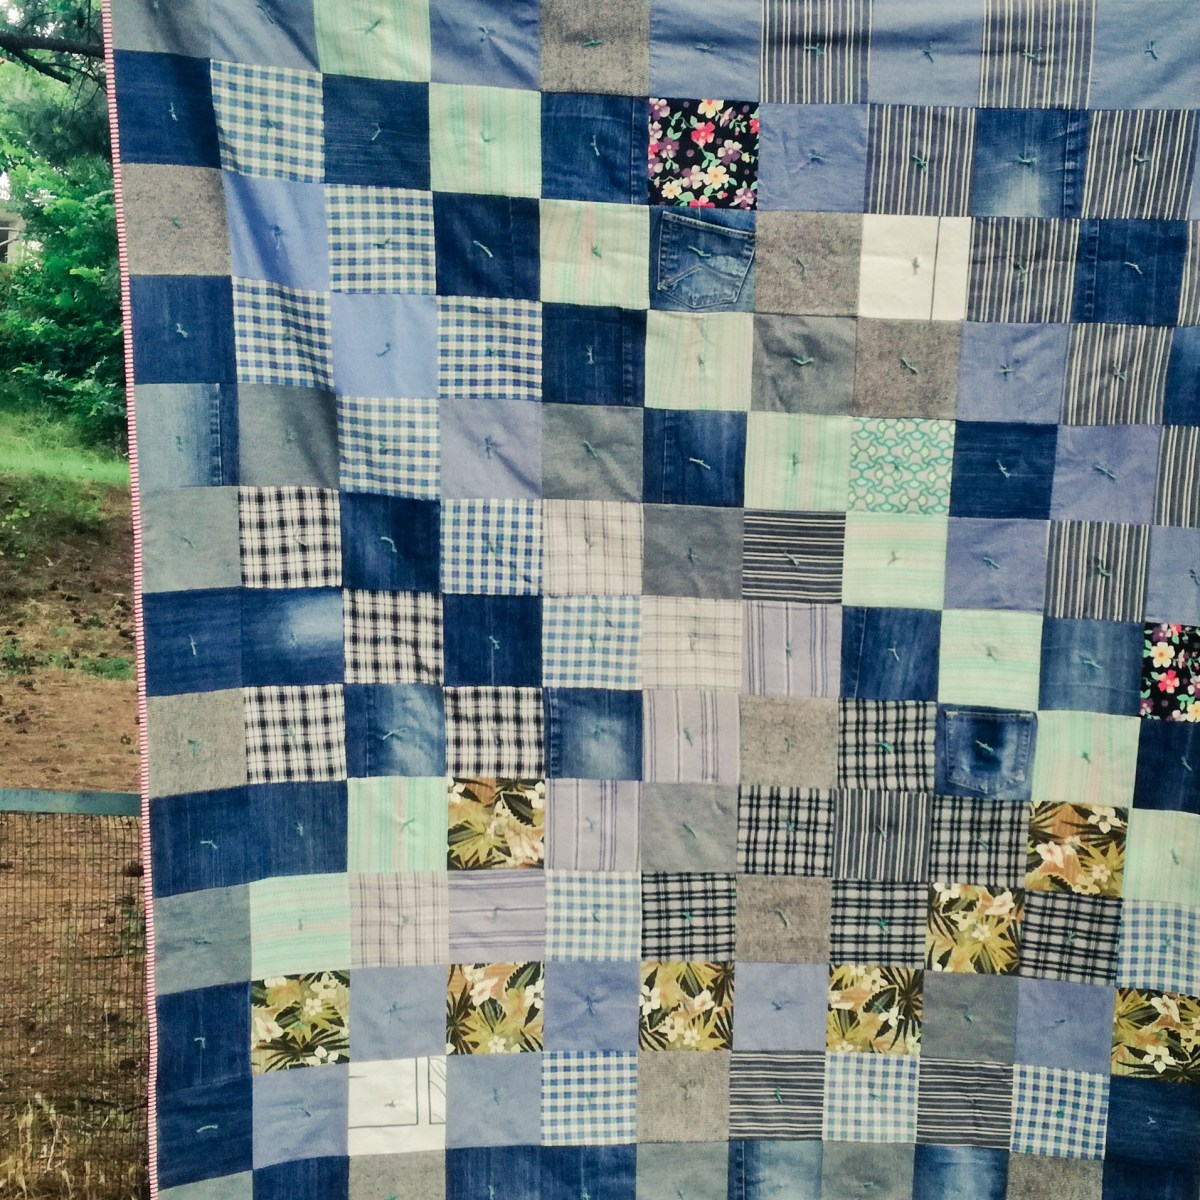 Denim quilt for our family picnics